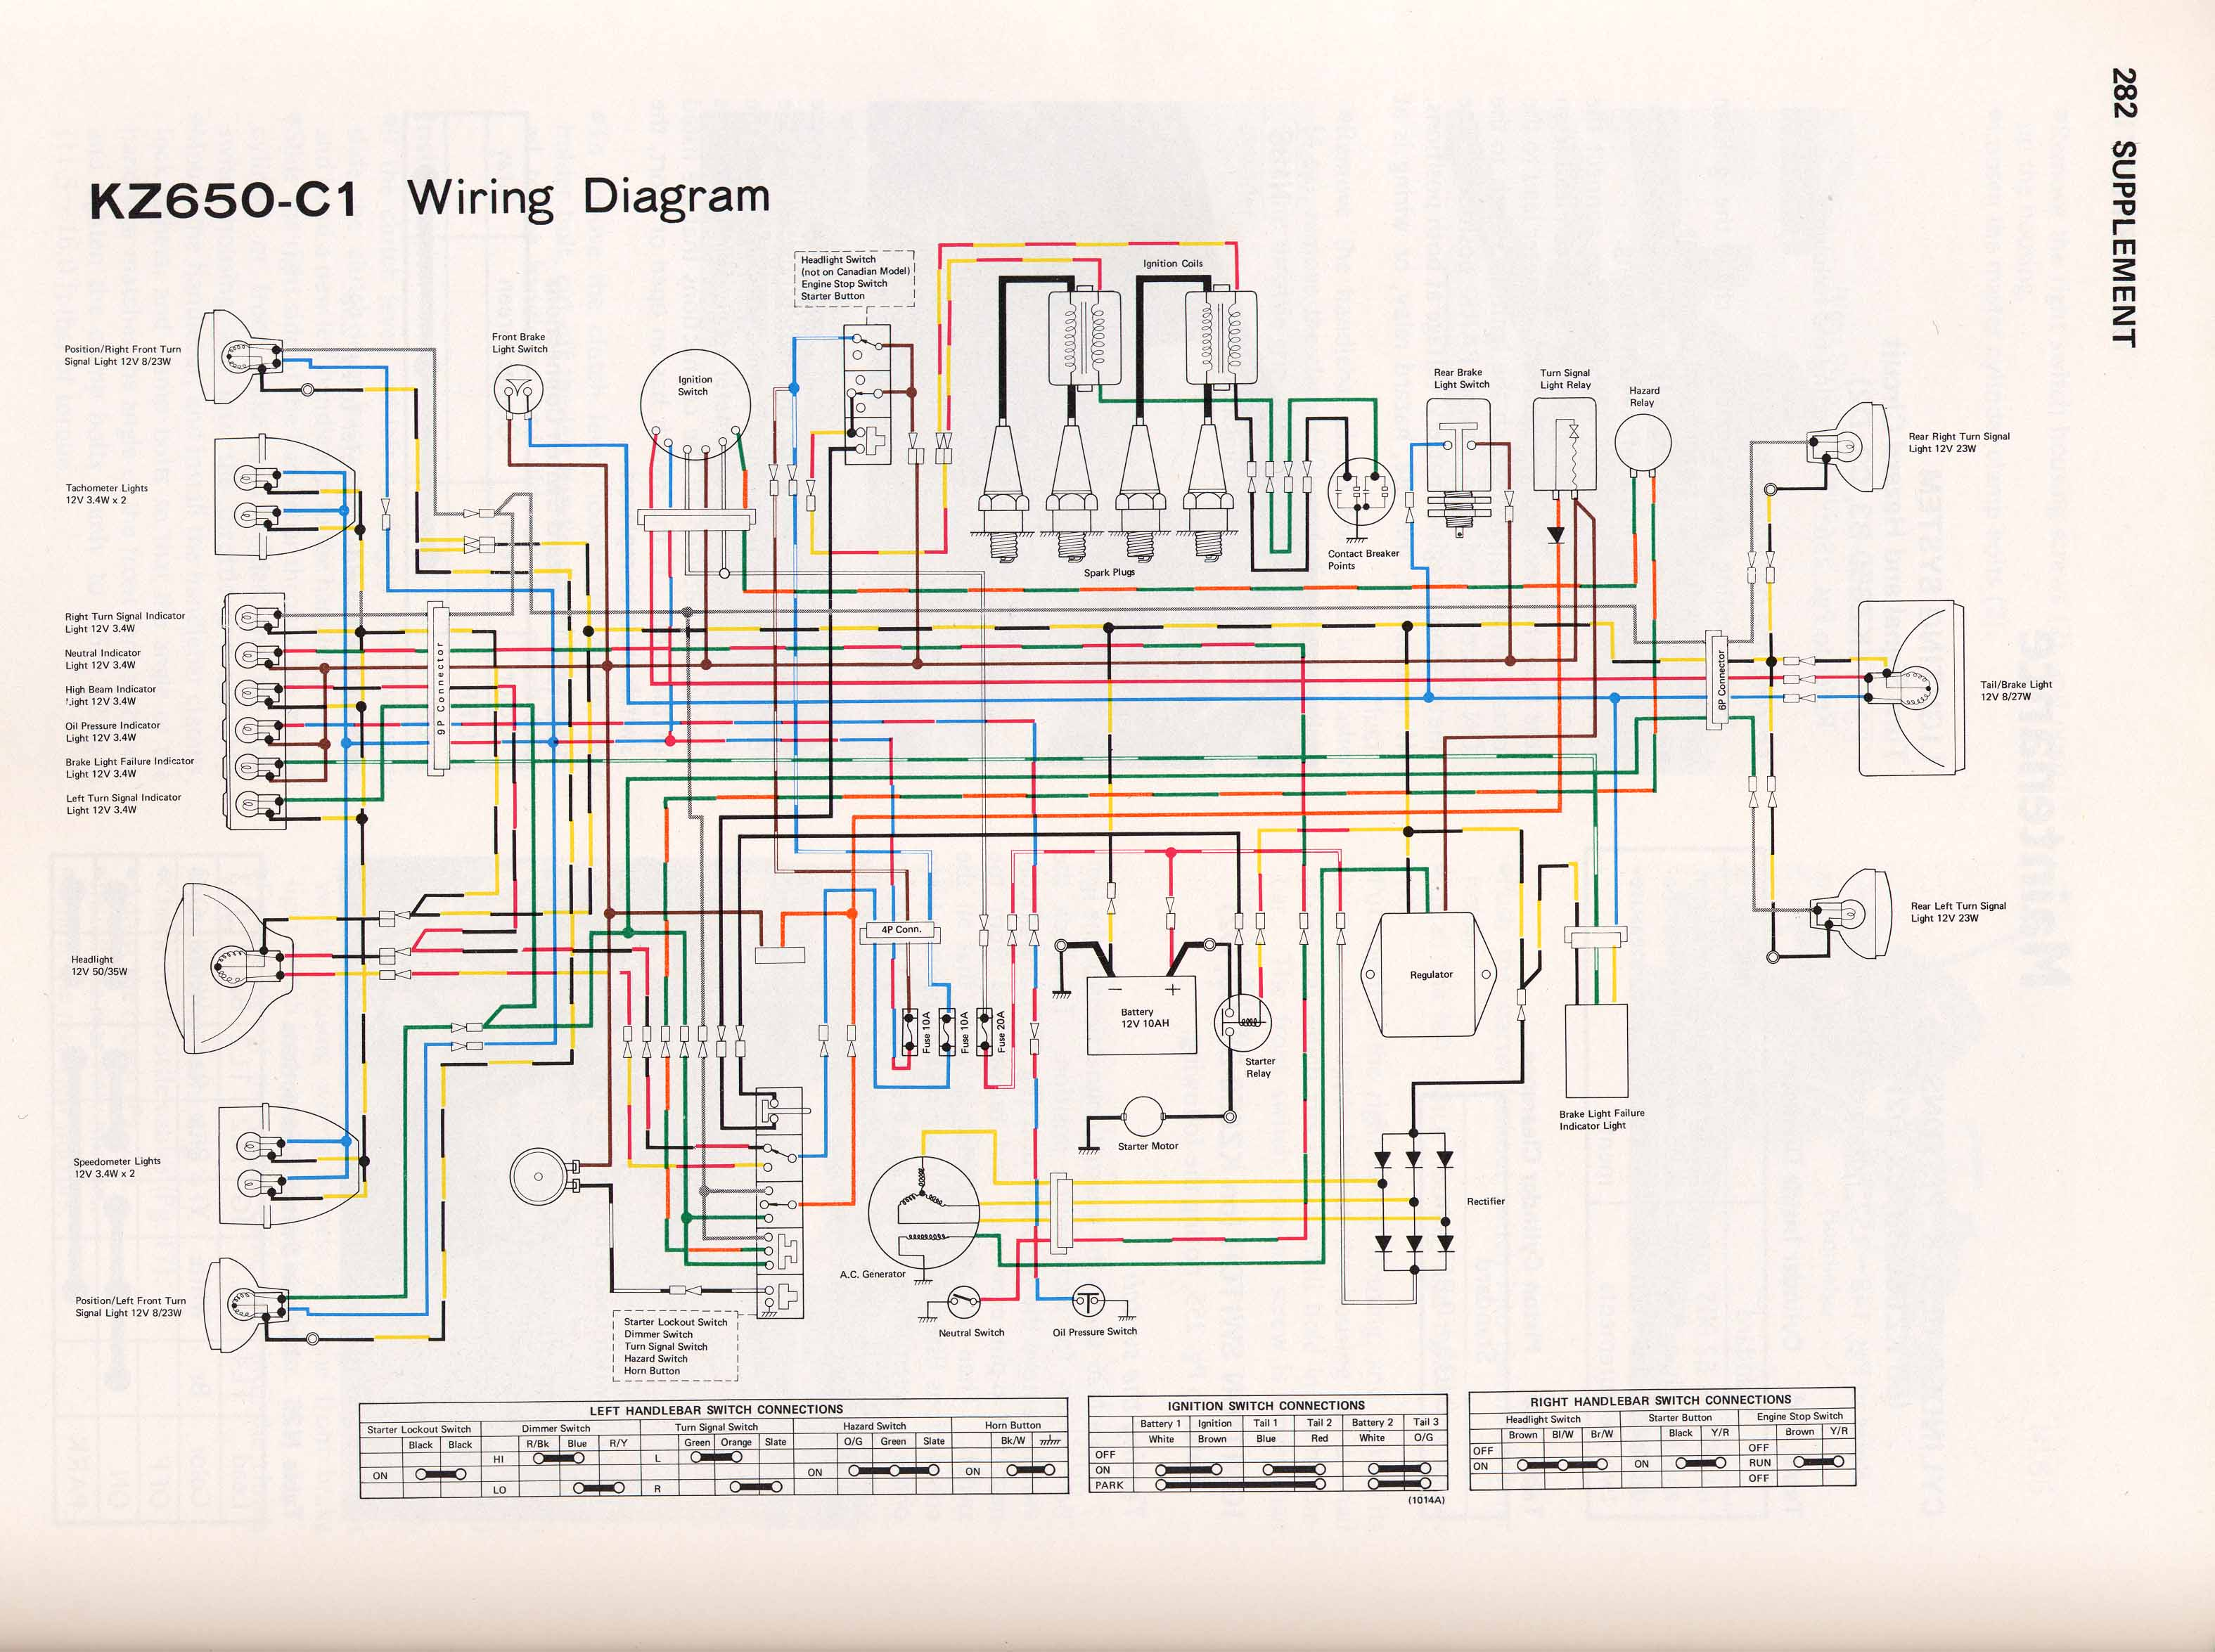 KZ650 C1 kz650 info wiring diagrams 1980 kawasaki 440 ltd wiring diagram at bayanpartner.co